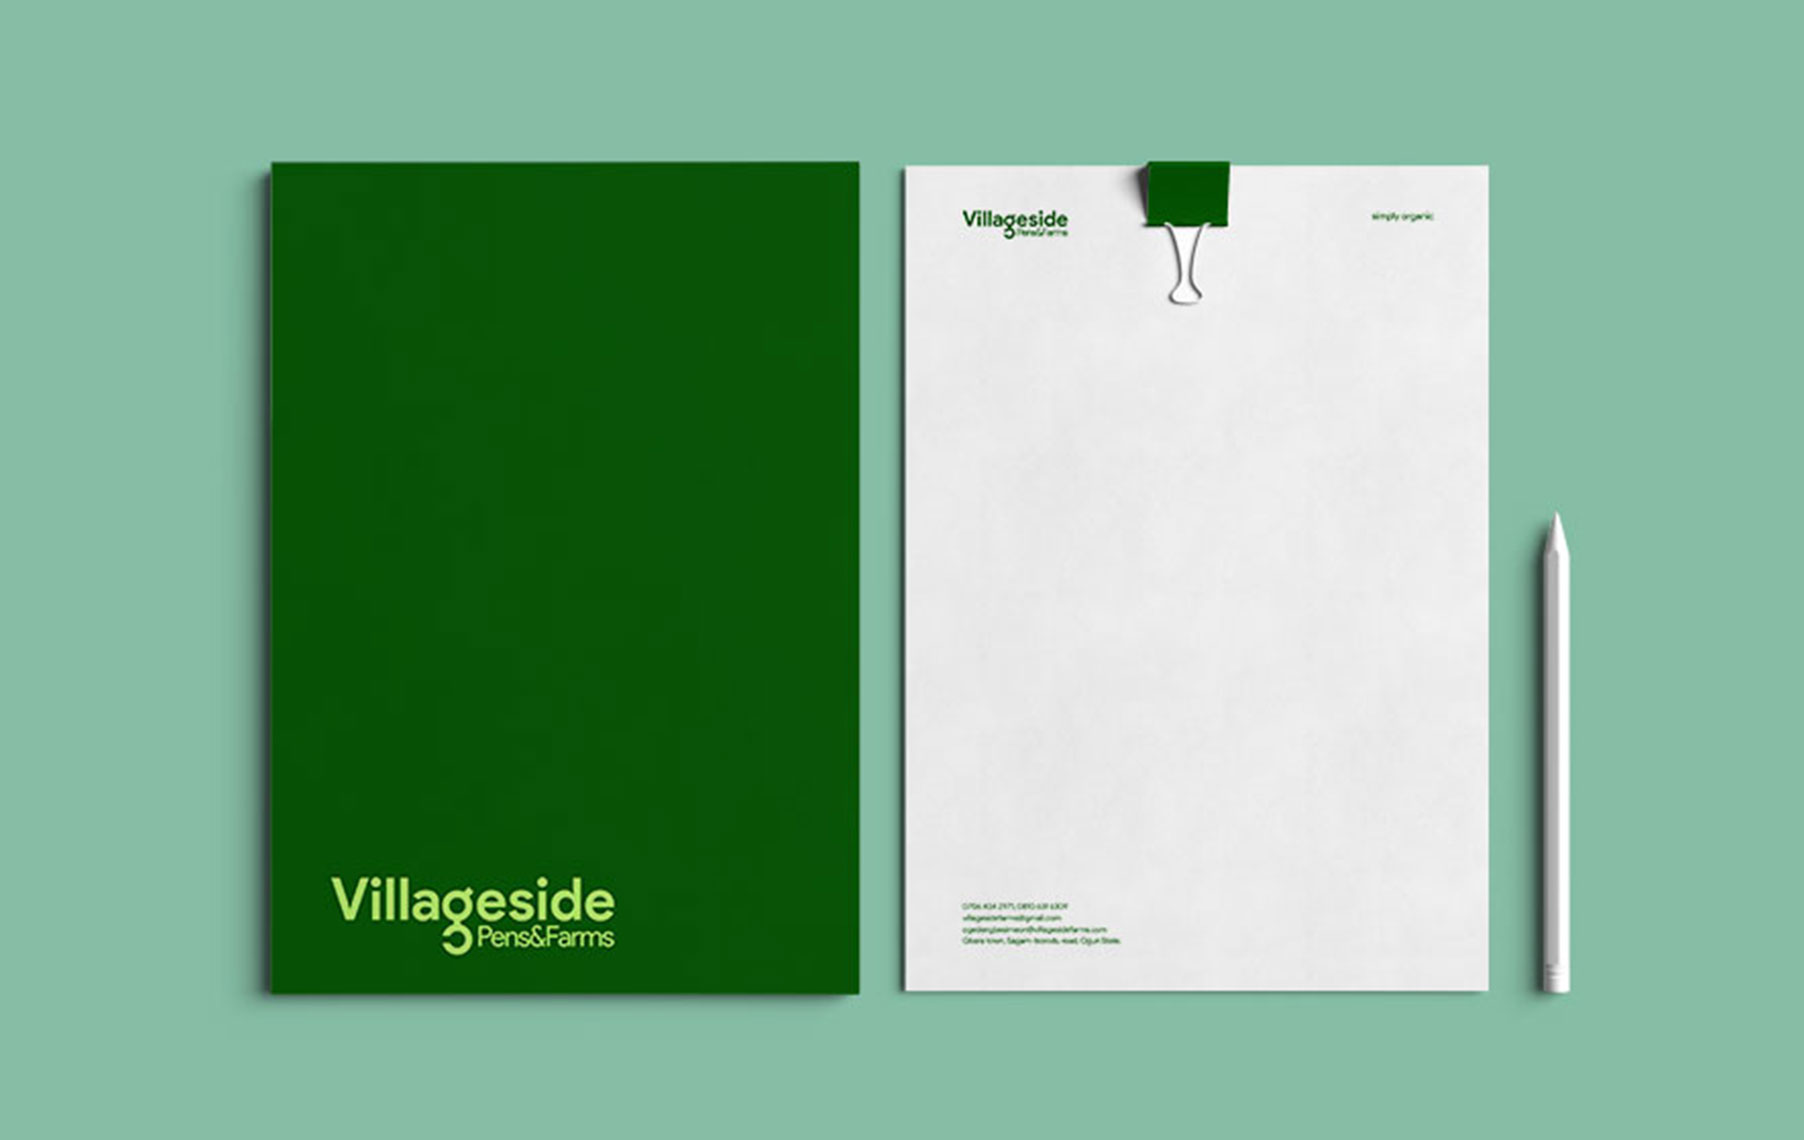 Villageside_file-jacket_and_letterhead